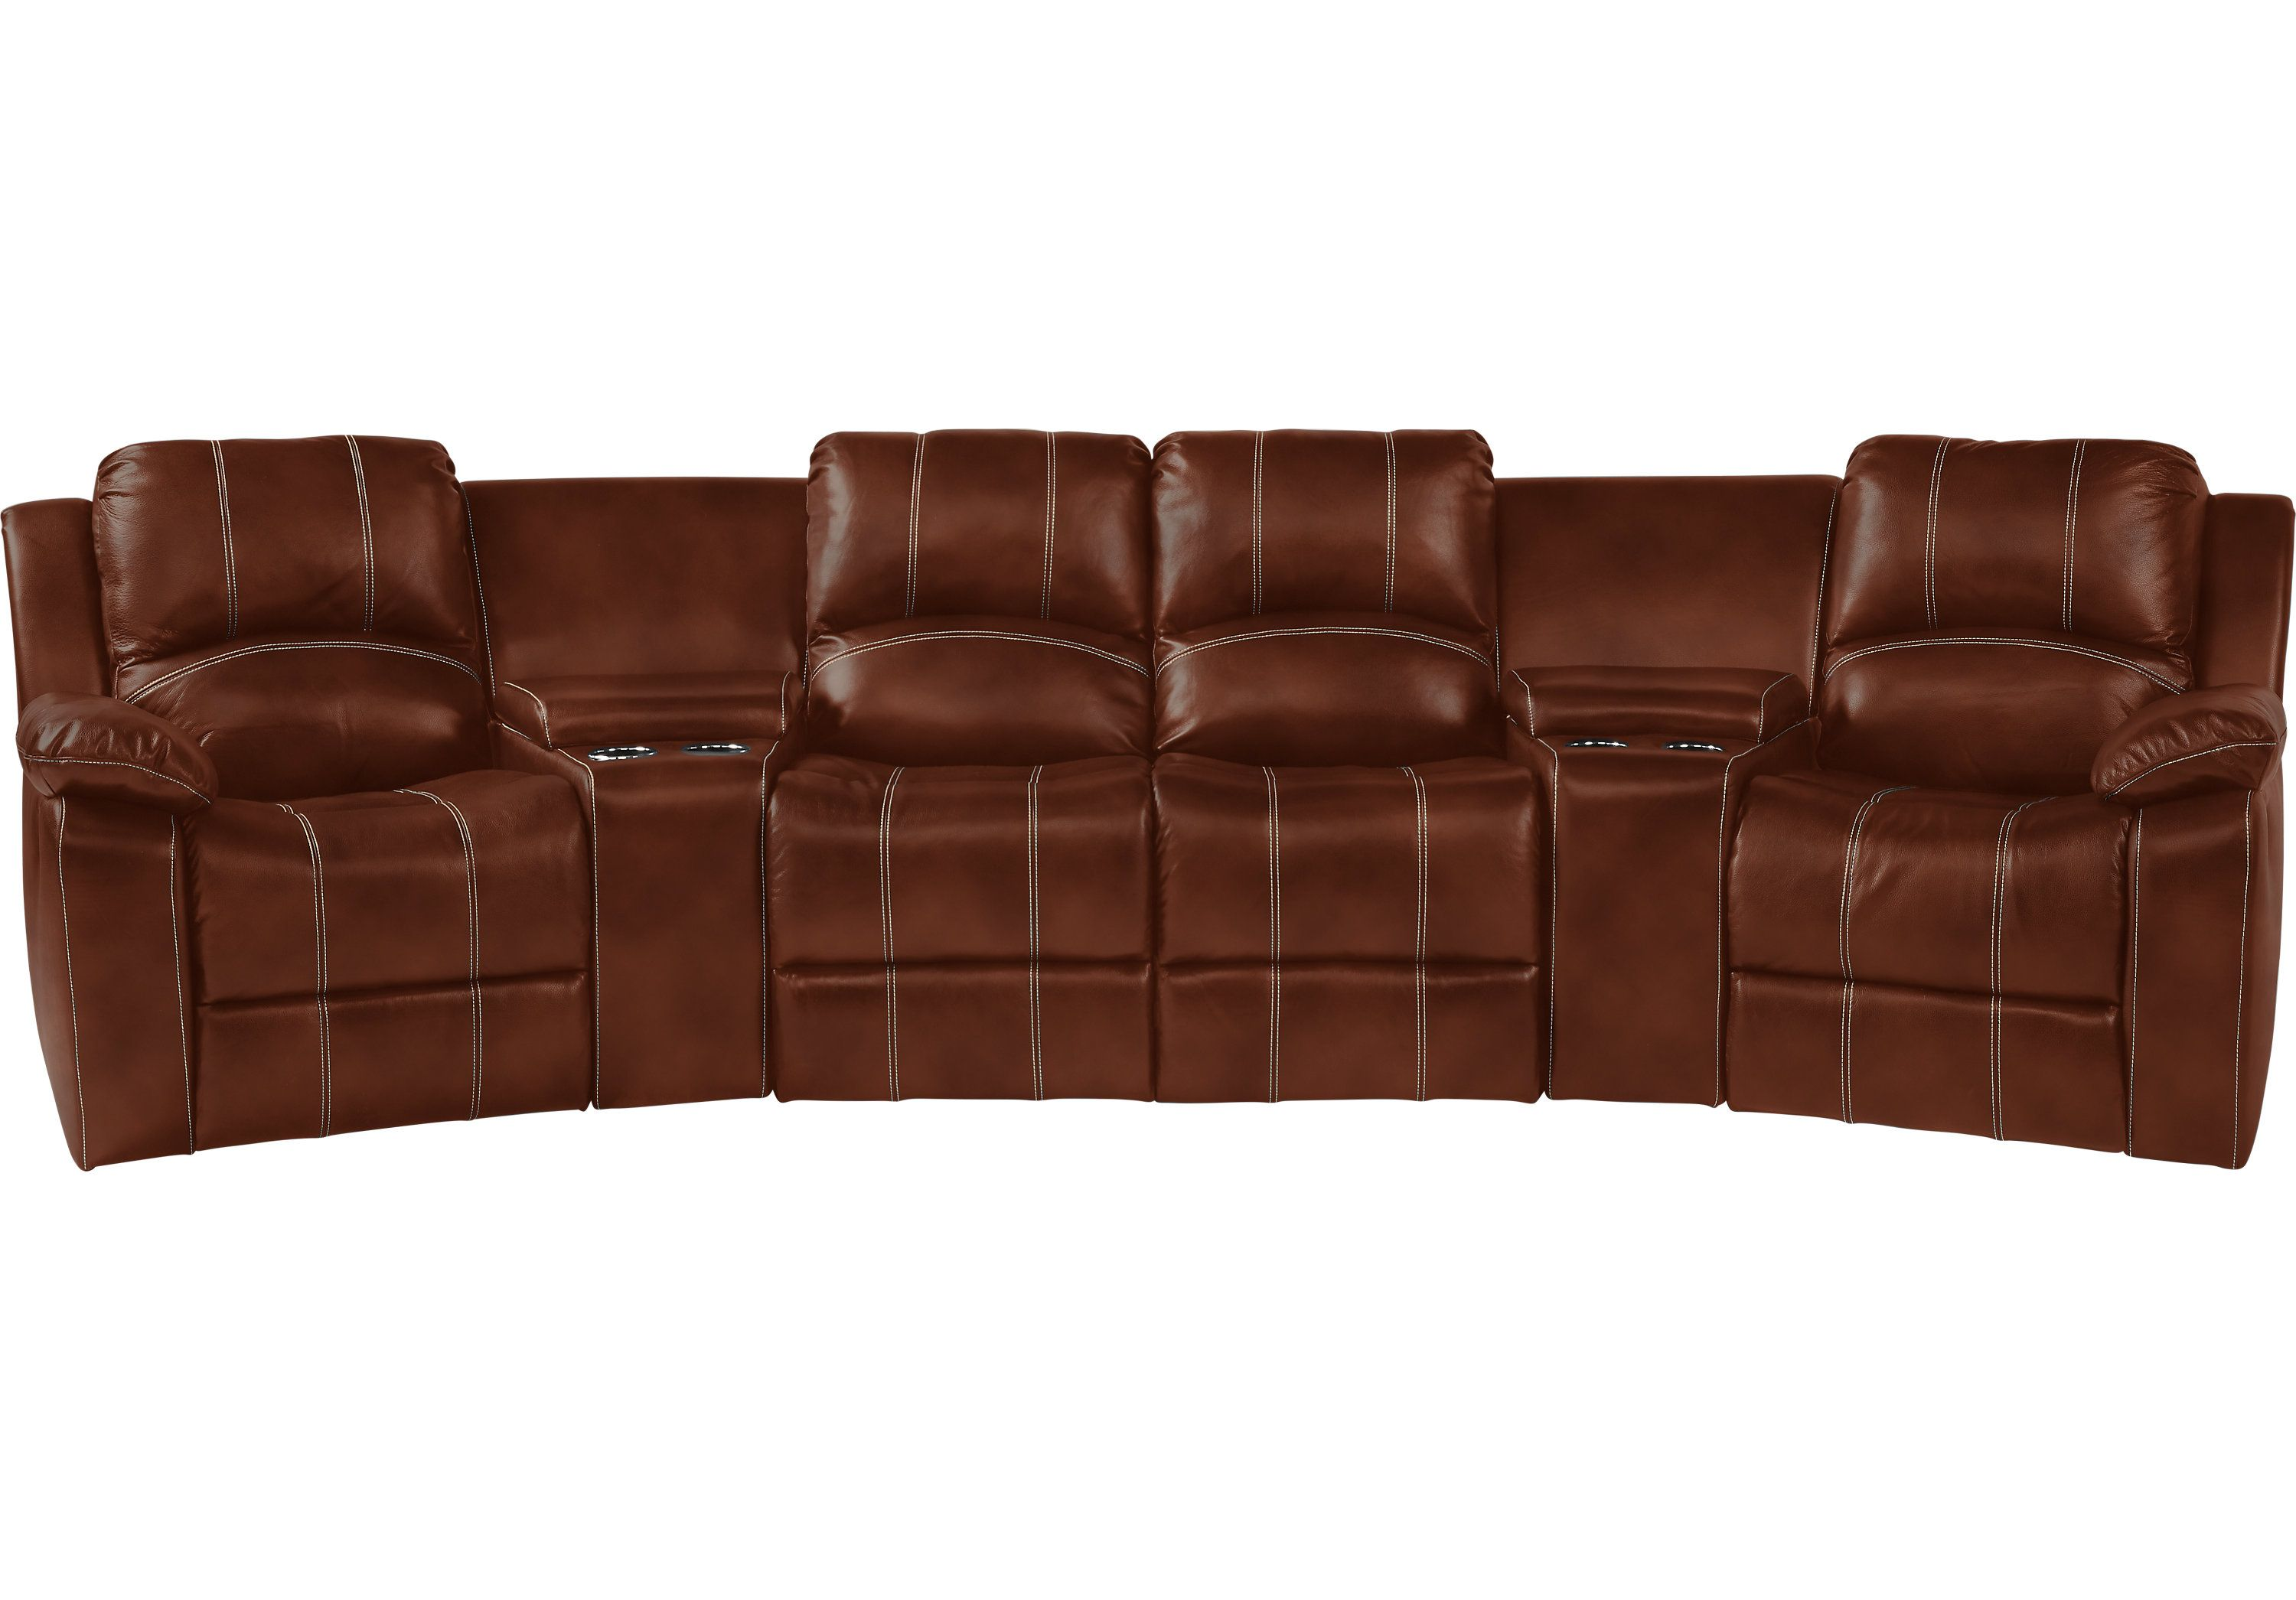 Picture of fenway heights brown 5 pc leather reclining sectional from leather sectionals furniture